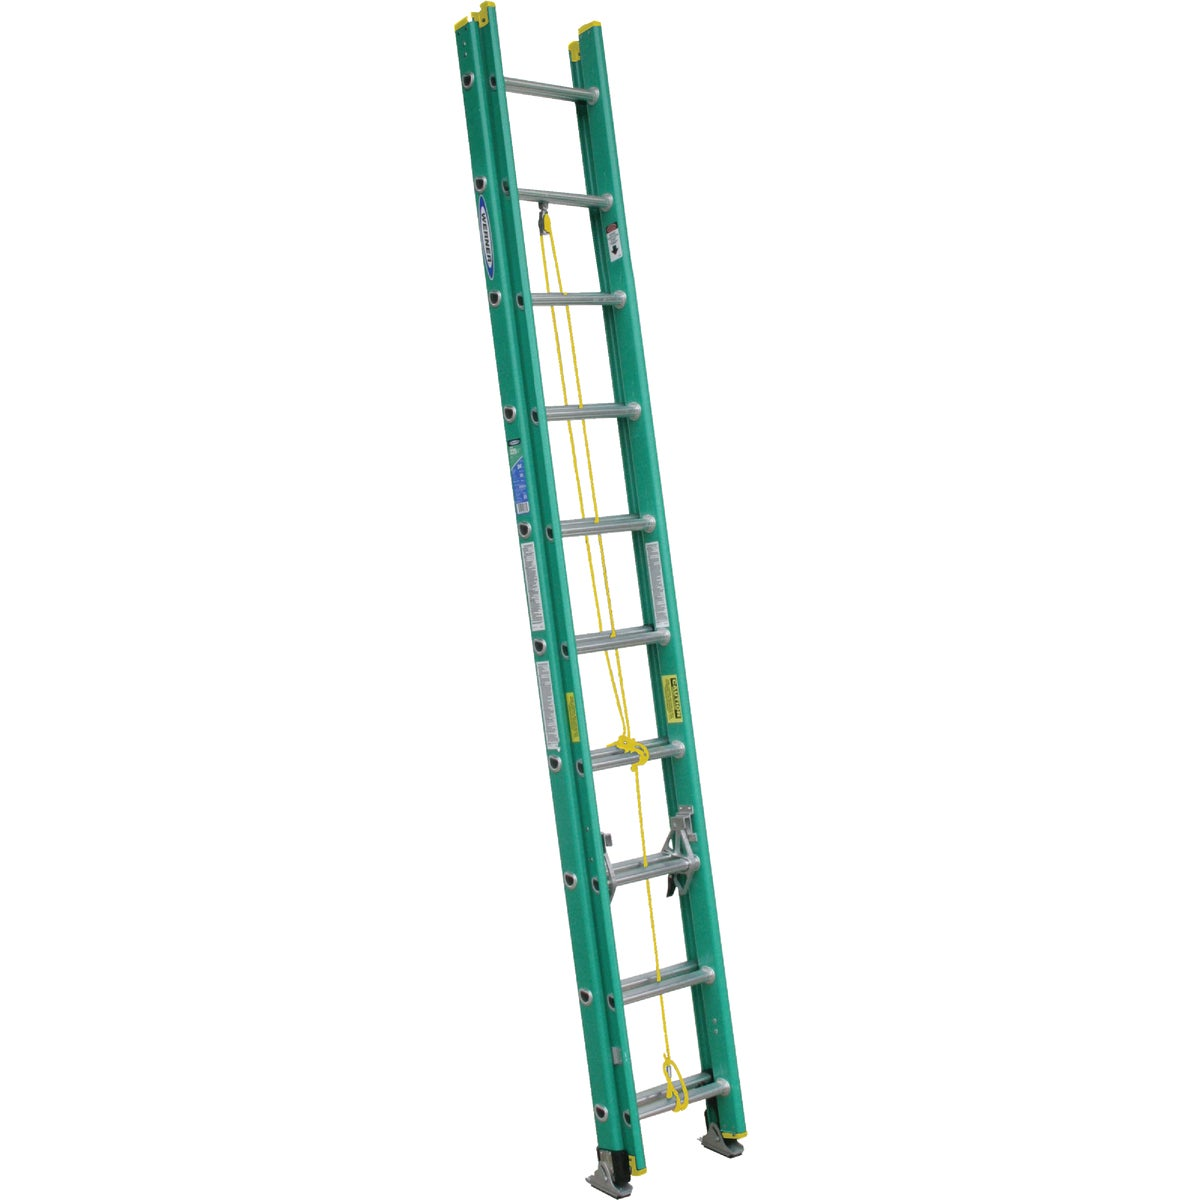 T-2 20' FBGL EXT LADDER